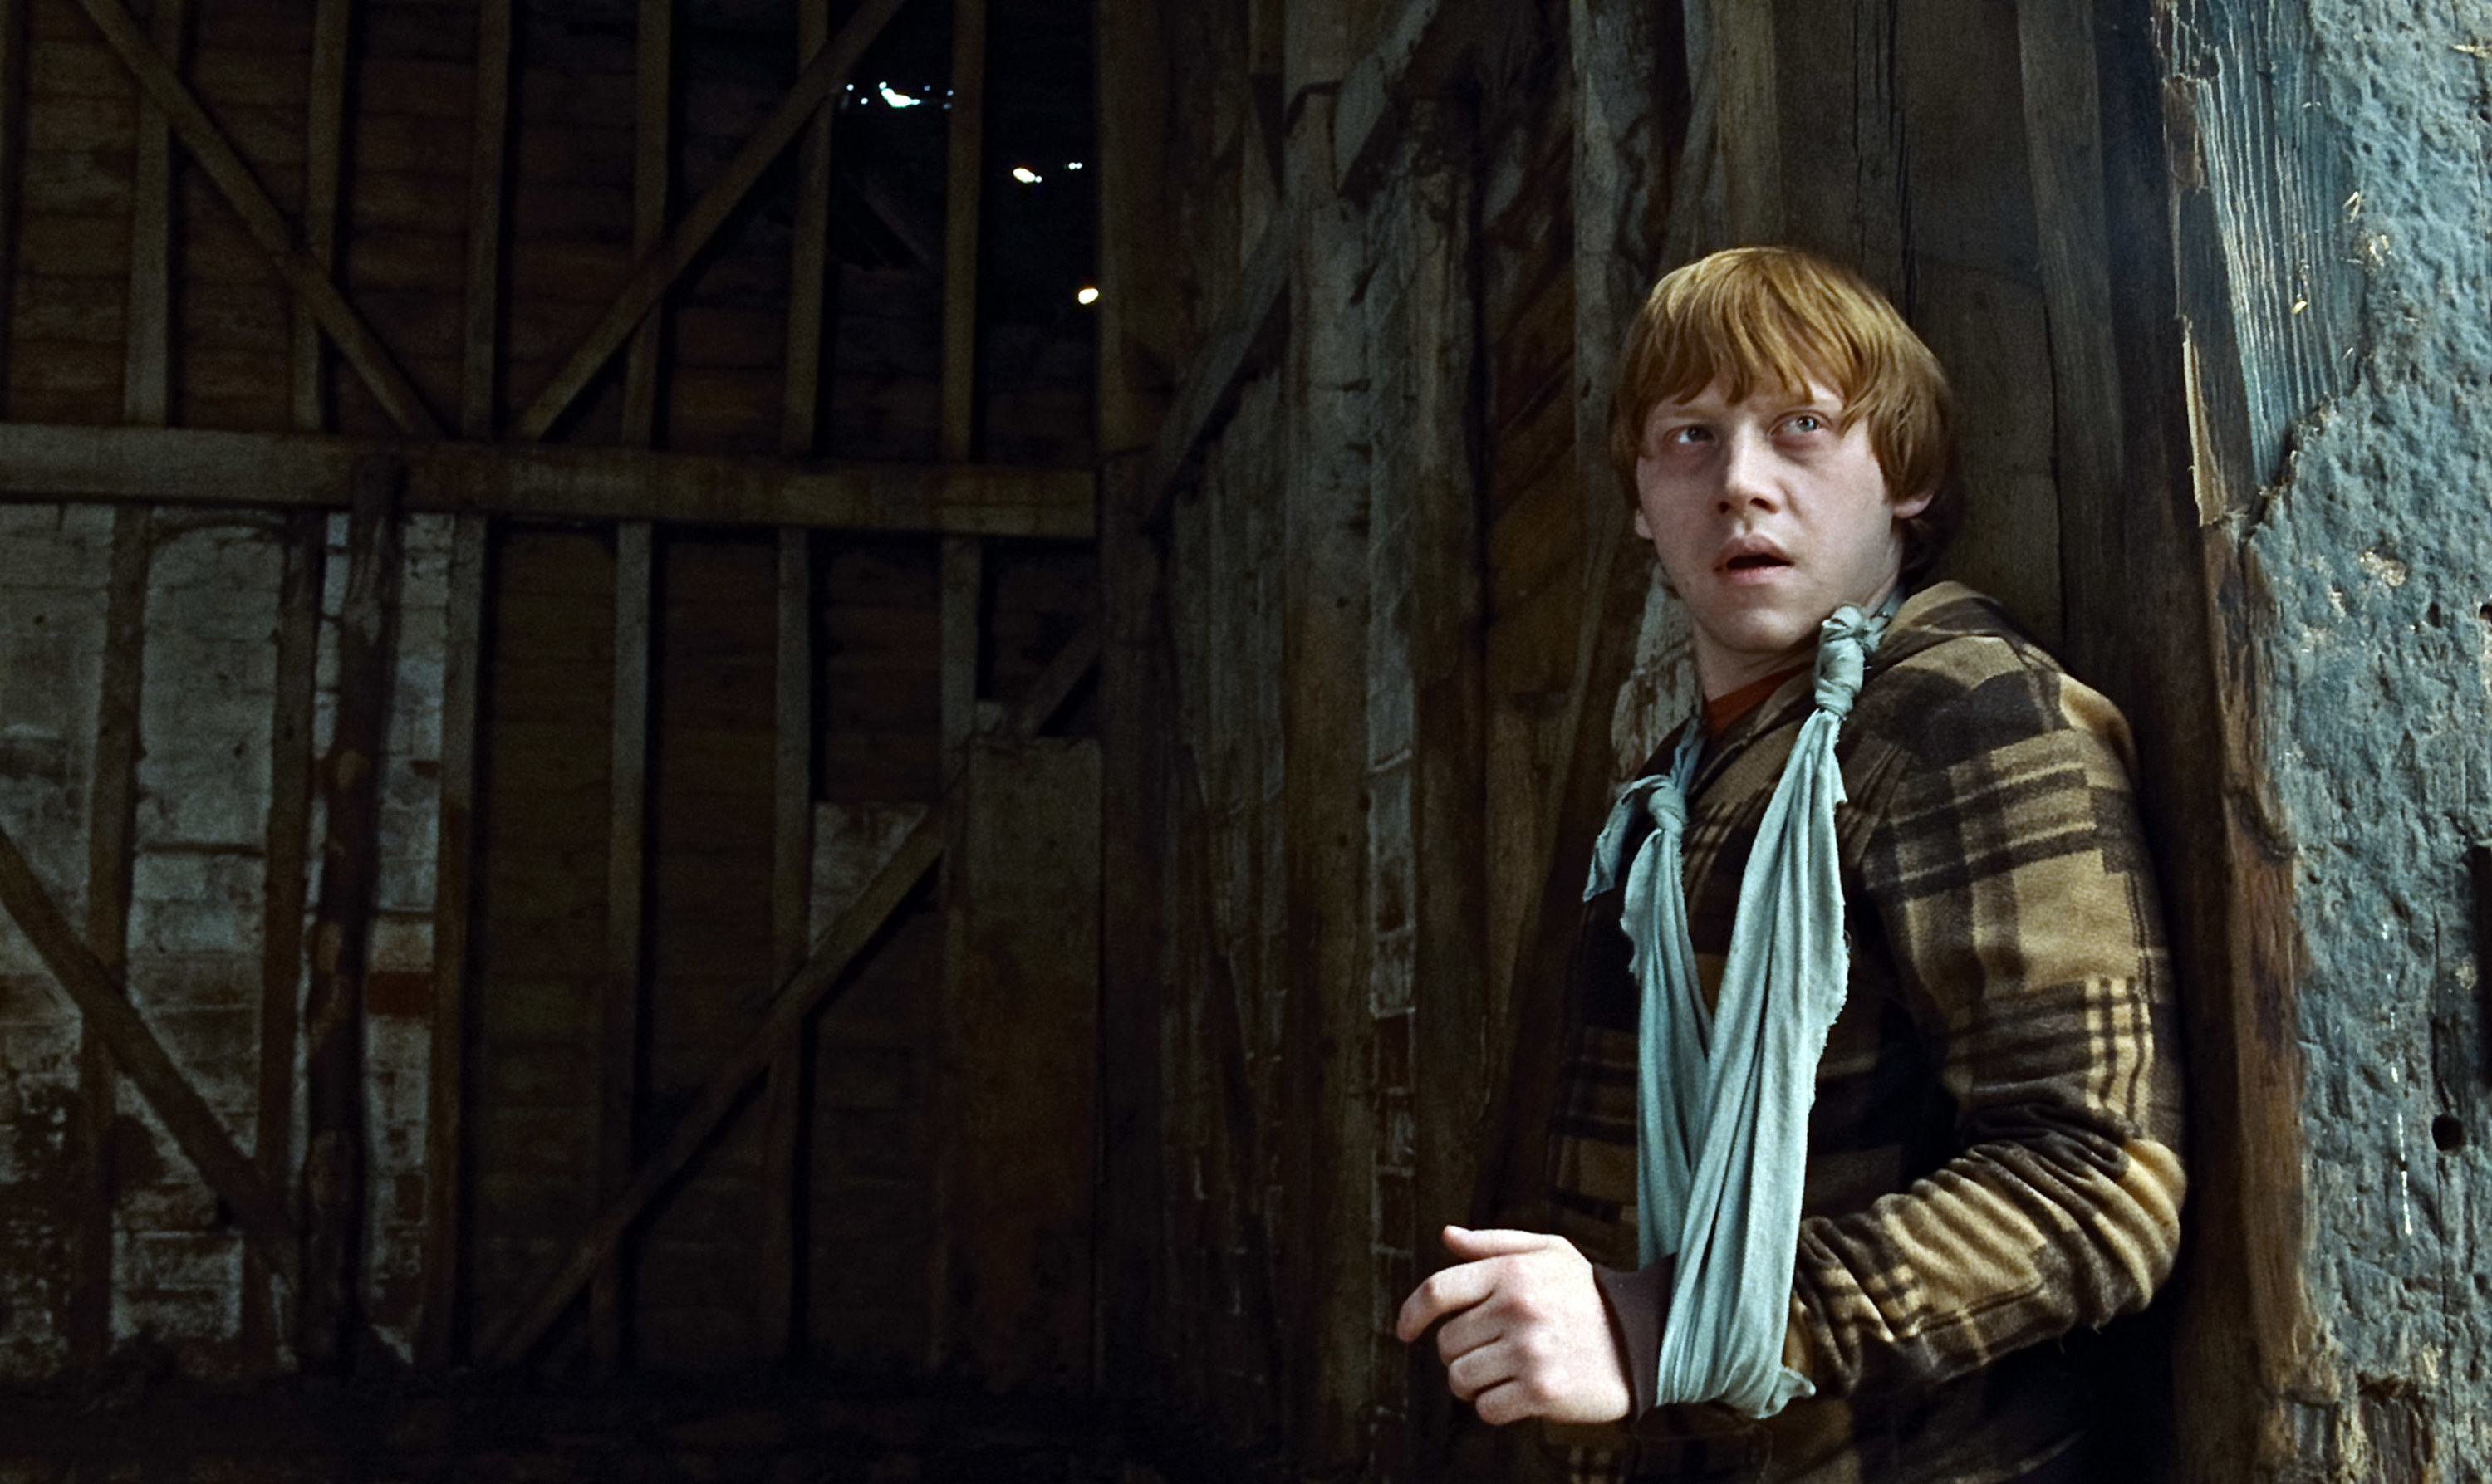 Rupert Grint with his arm in a cast in Harry Potter and the Deathly Hallows: Part 1